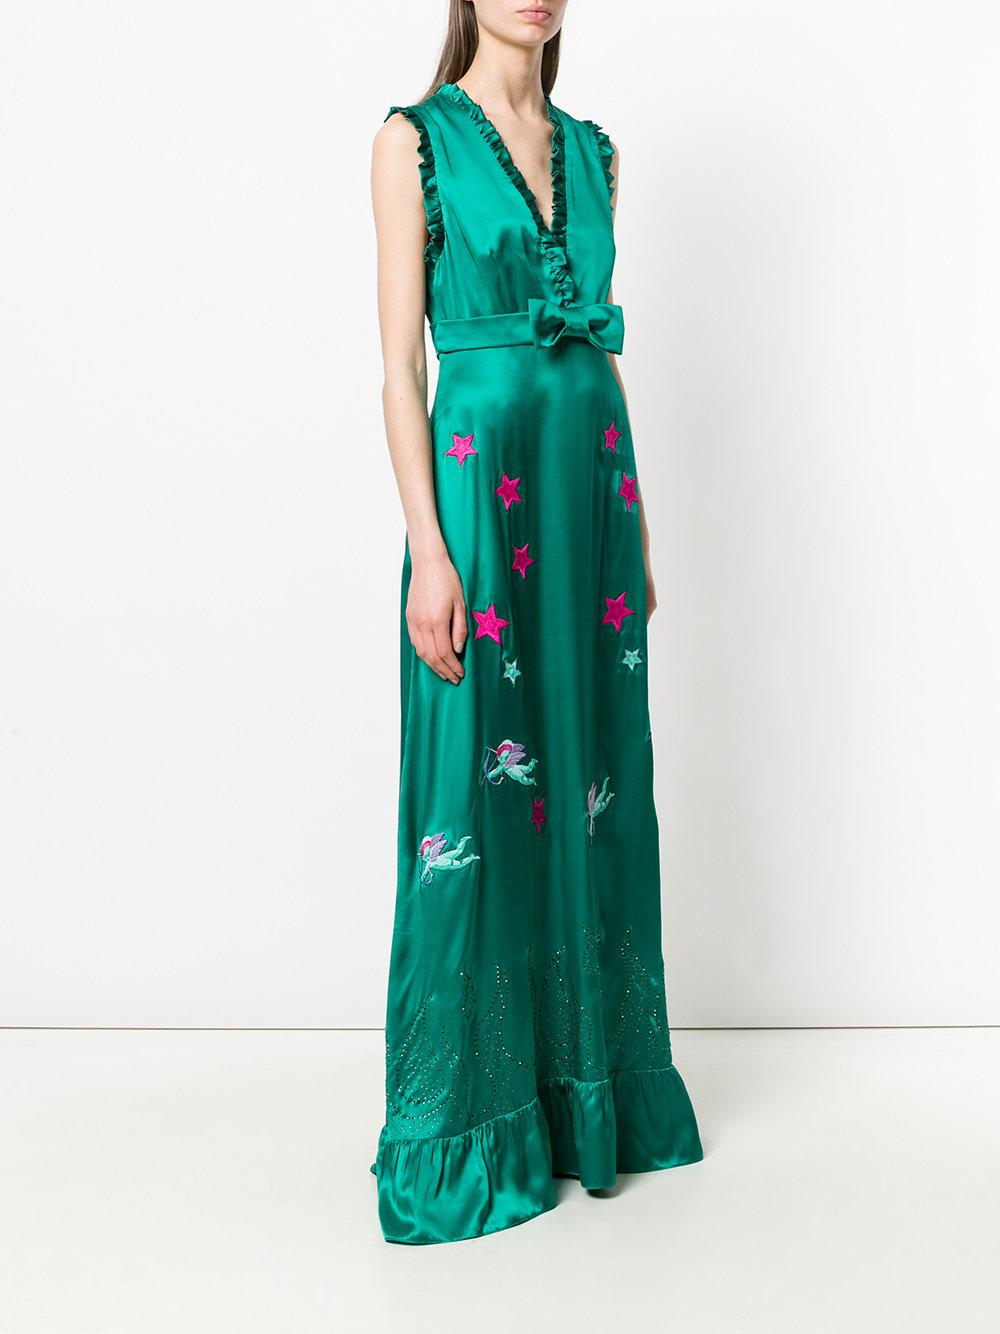 Manchester Great Sale Cheap Price Shopping Online Outlet Sale jewelled scalloped dress - Green John Richmond NRjyT0NQf2